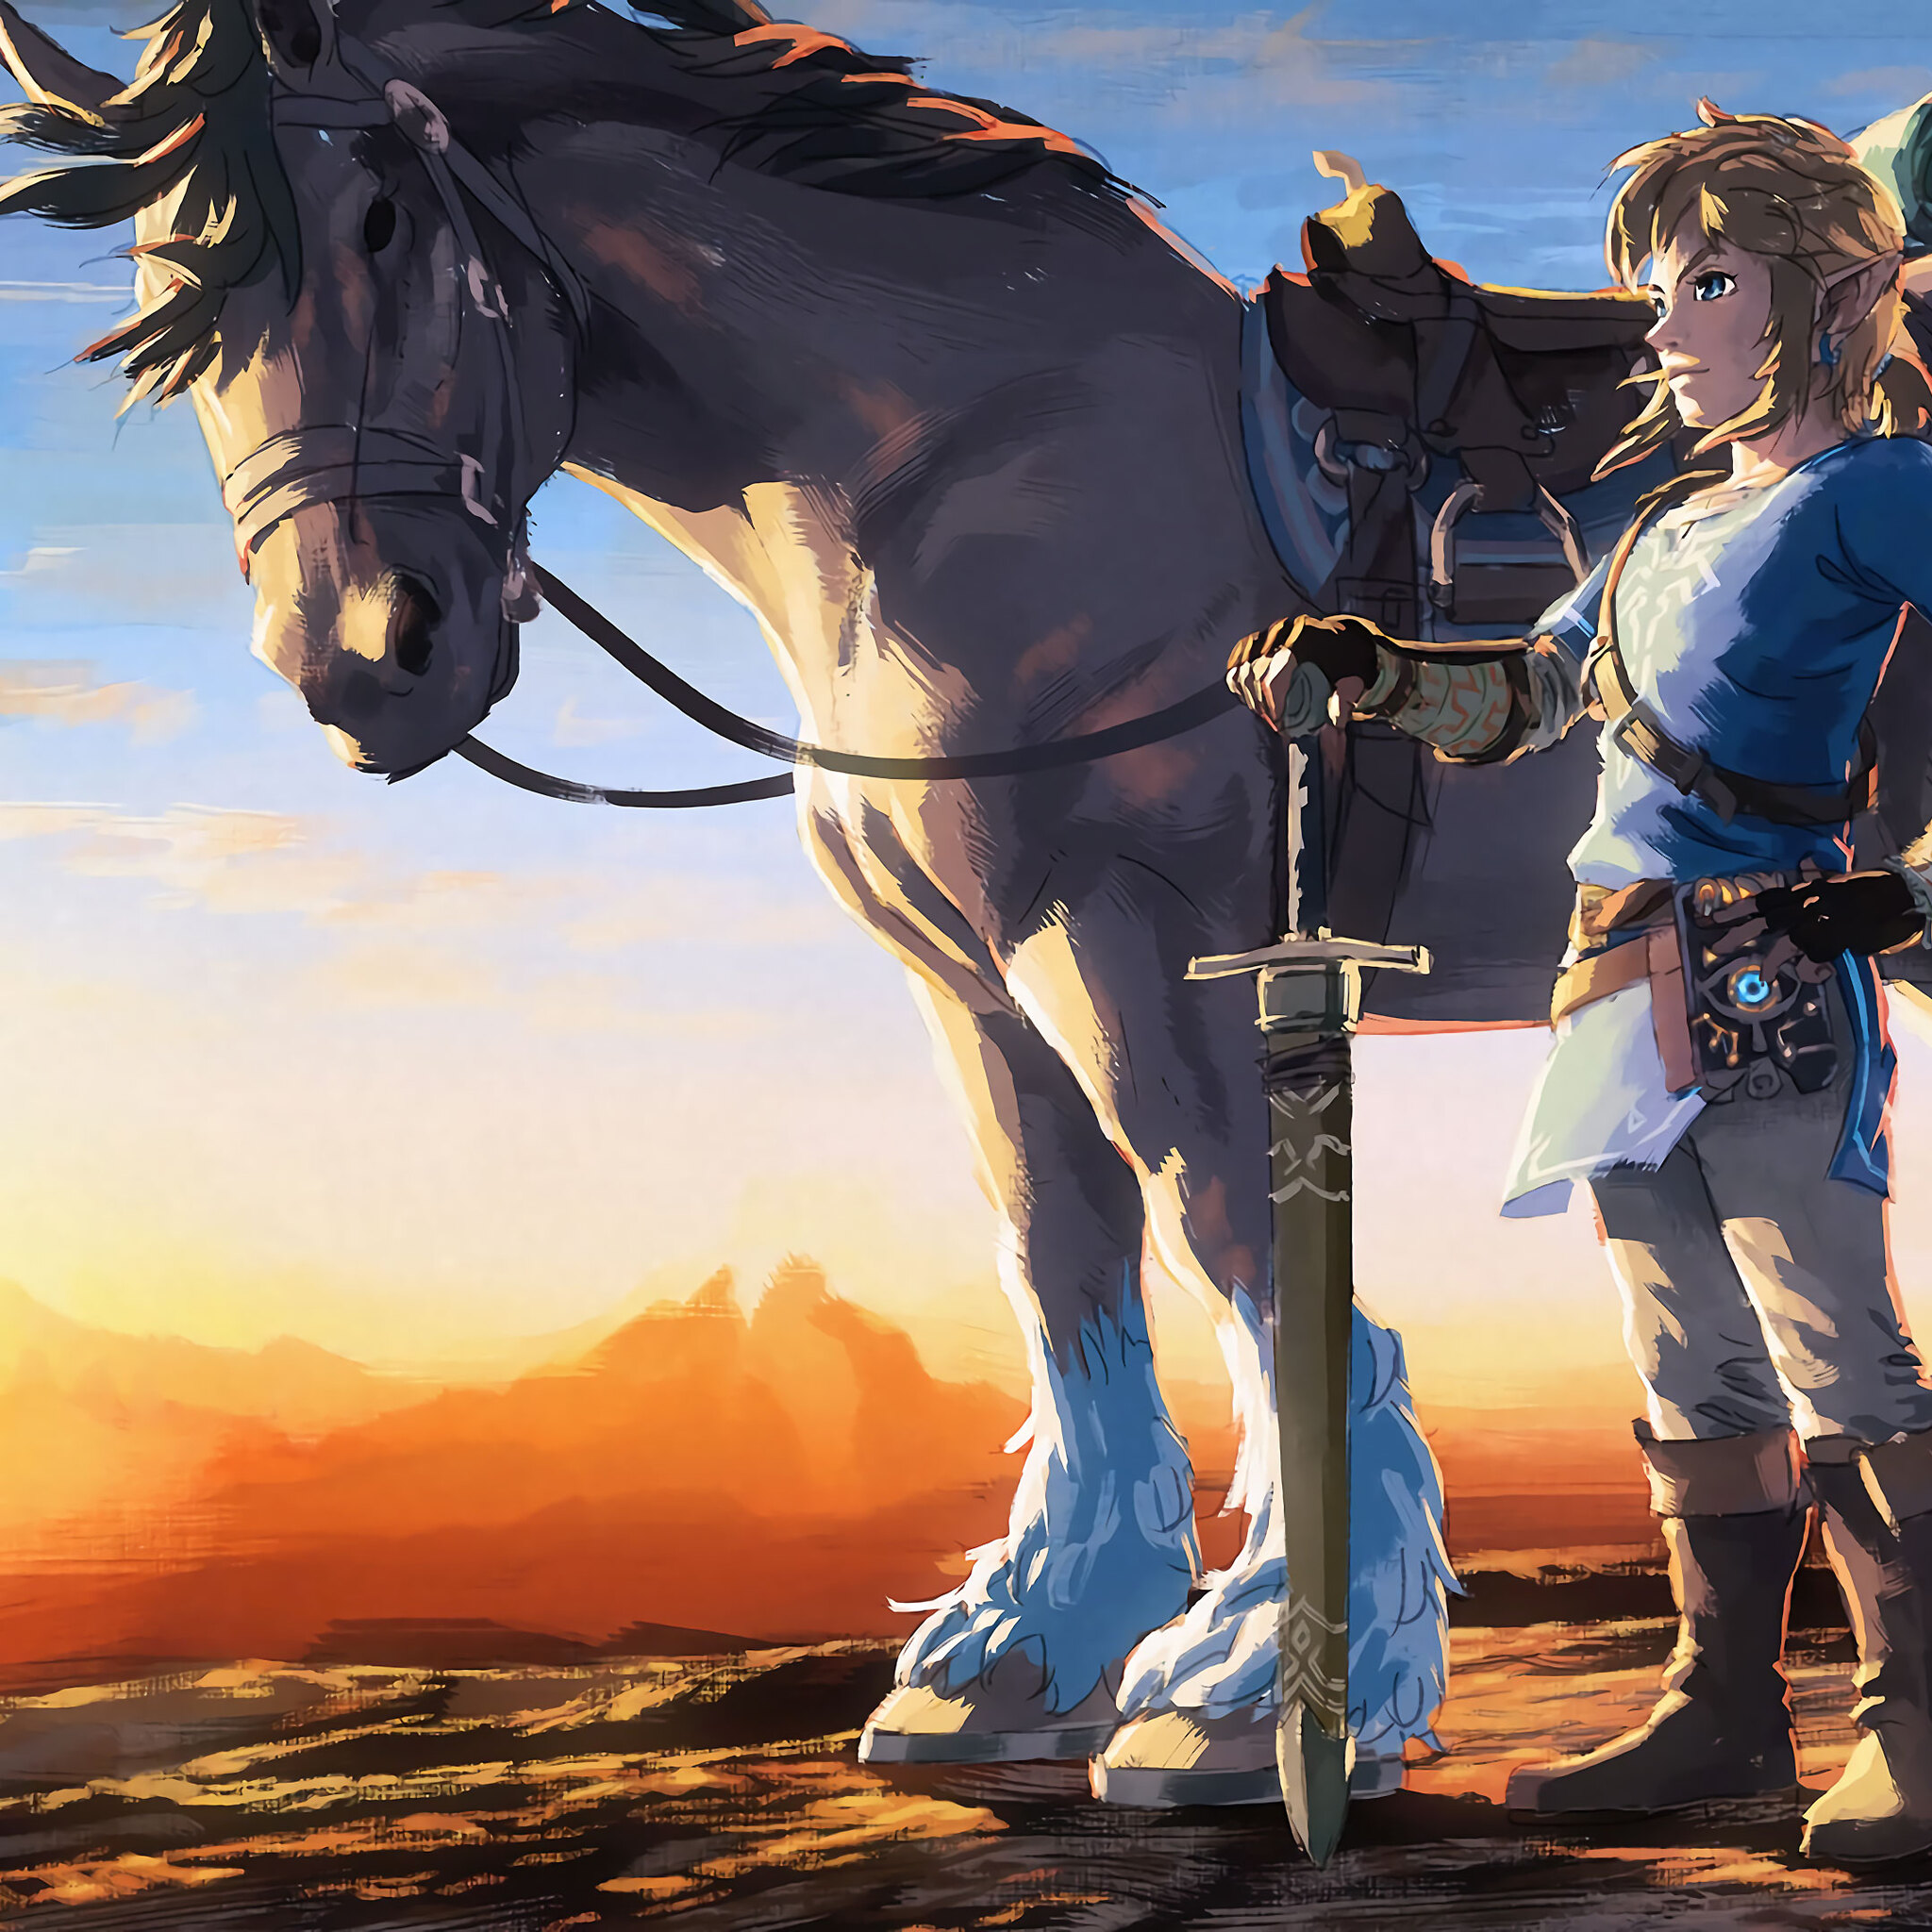 the-legend-of-zelda-artwork-image.jpg